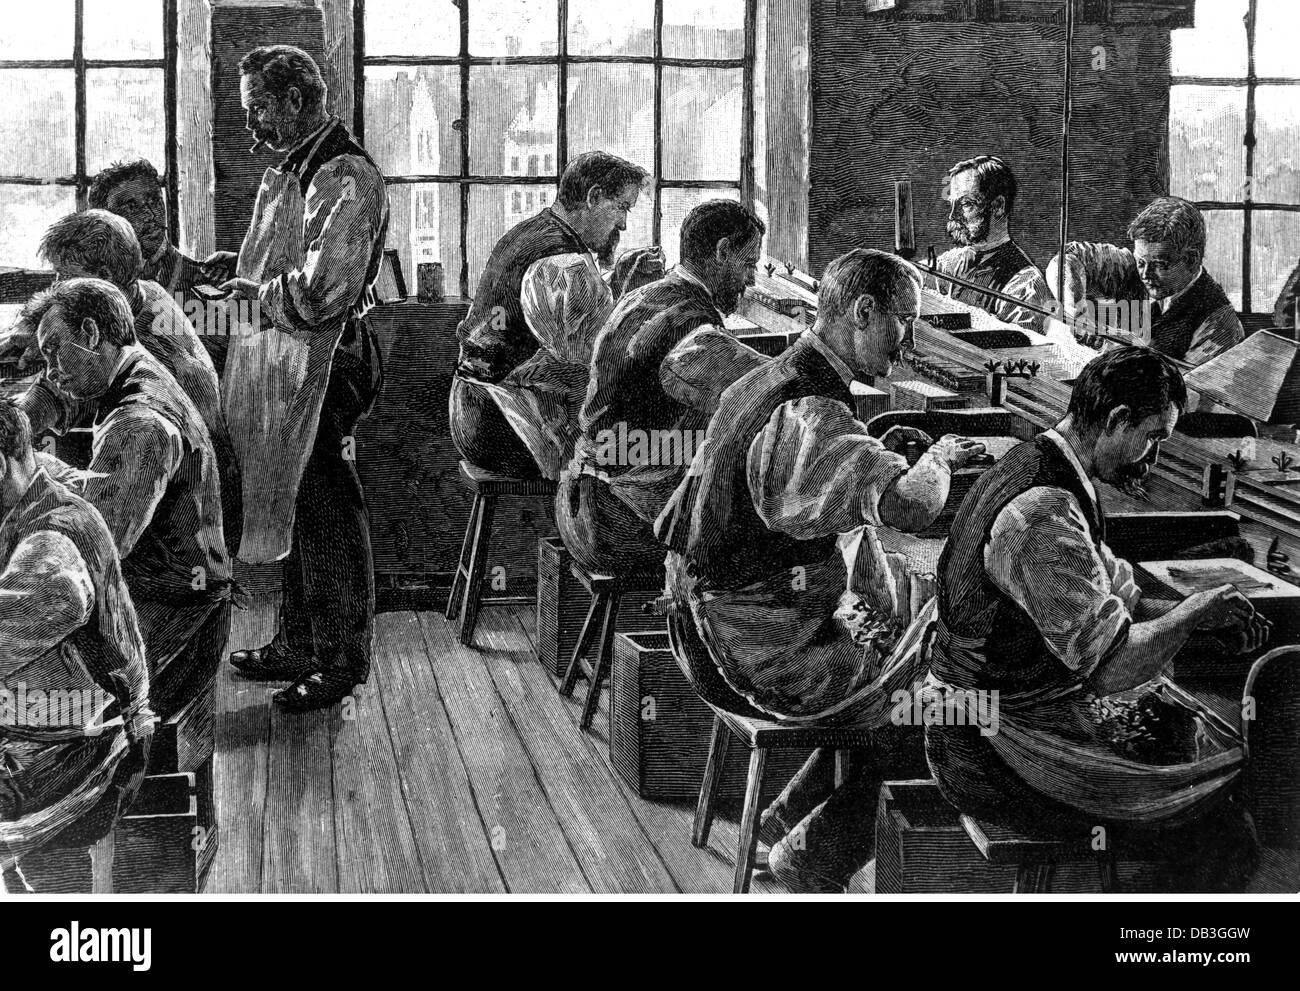 industry, tobacco, manual work in a cigar factory, wood engraving, 1896, Additional-Rights-Clearences-NA - Stock Image